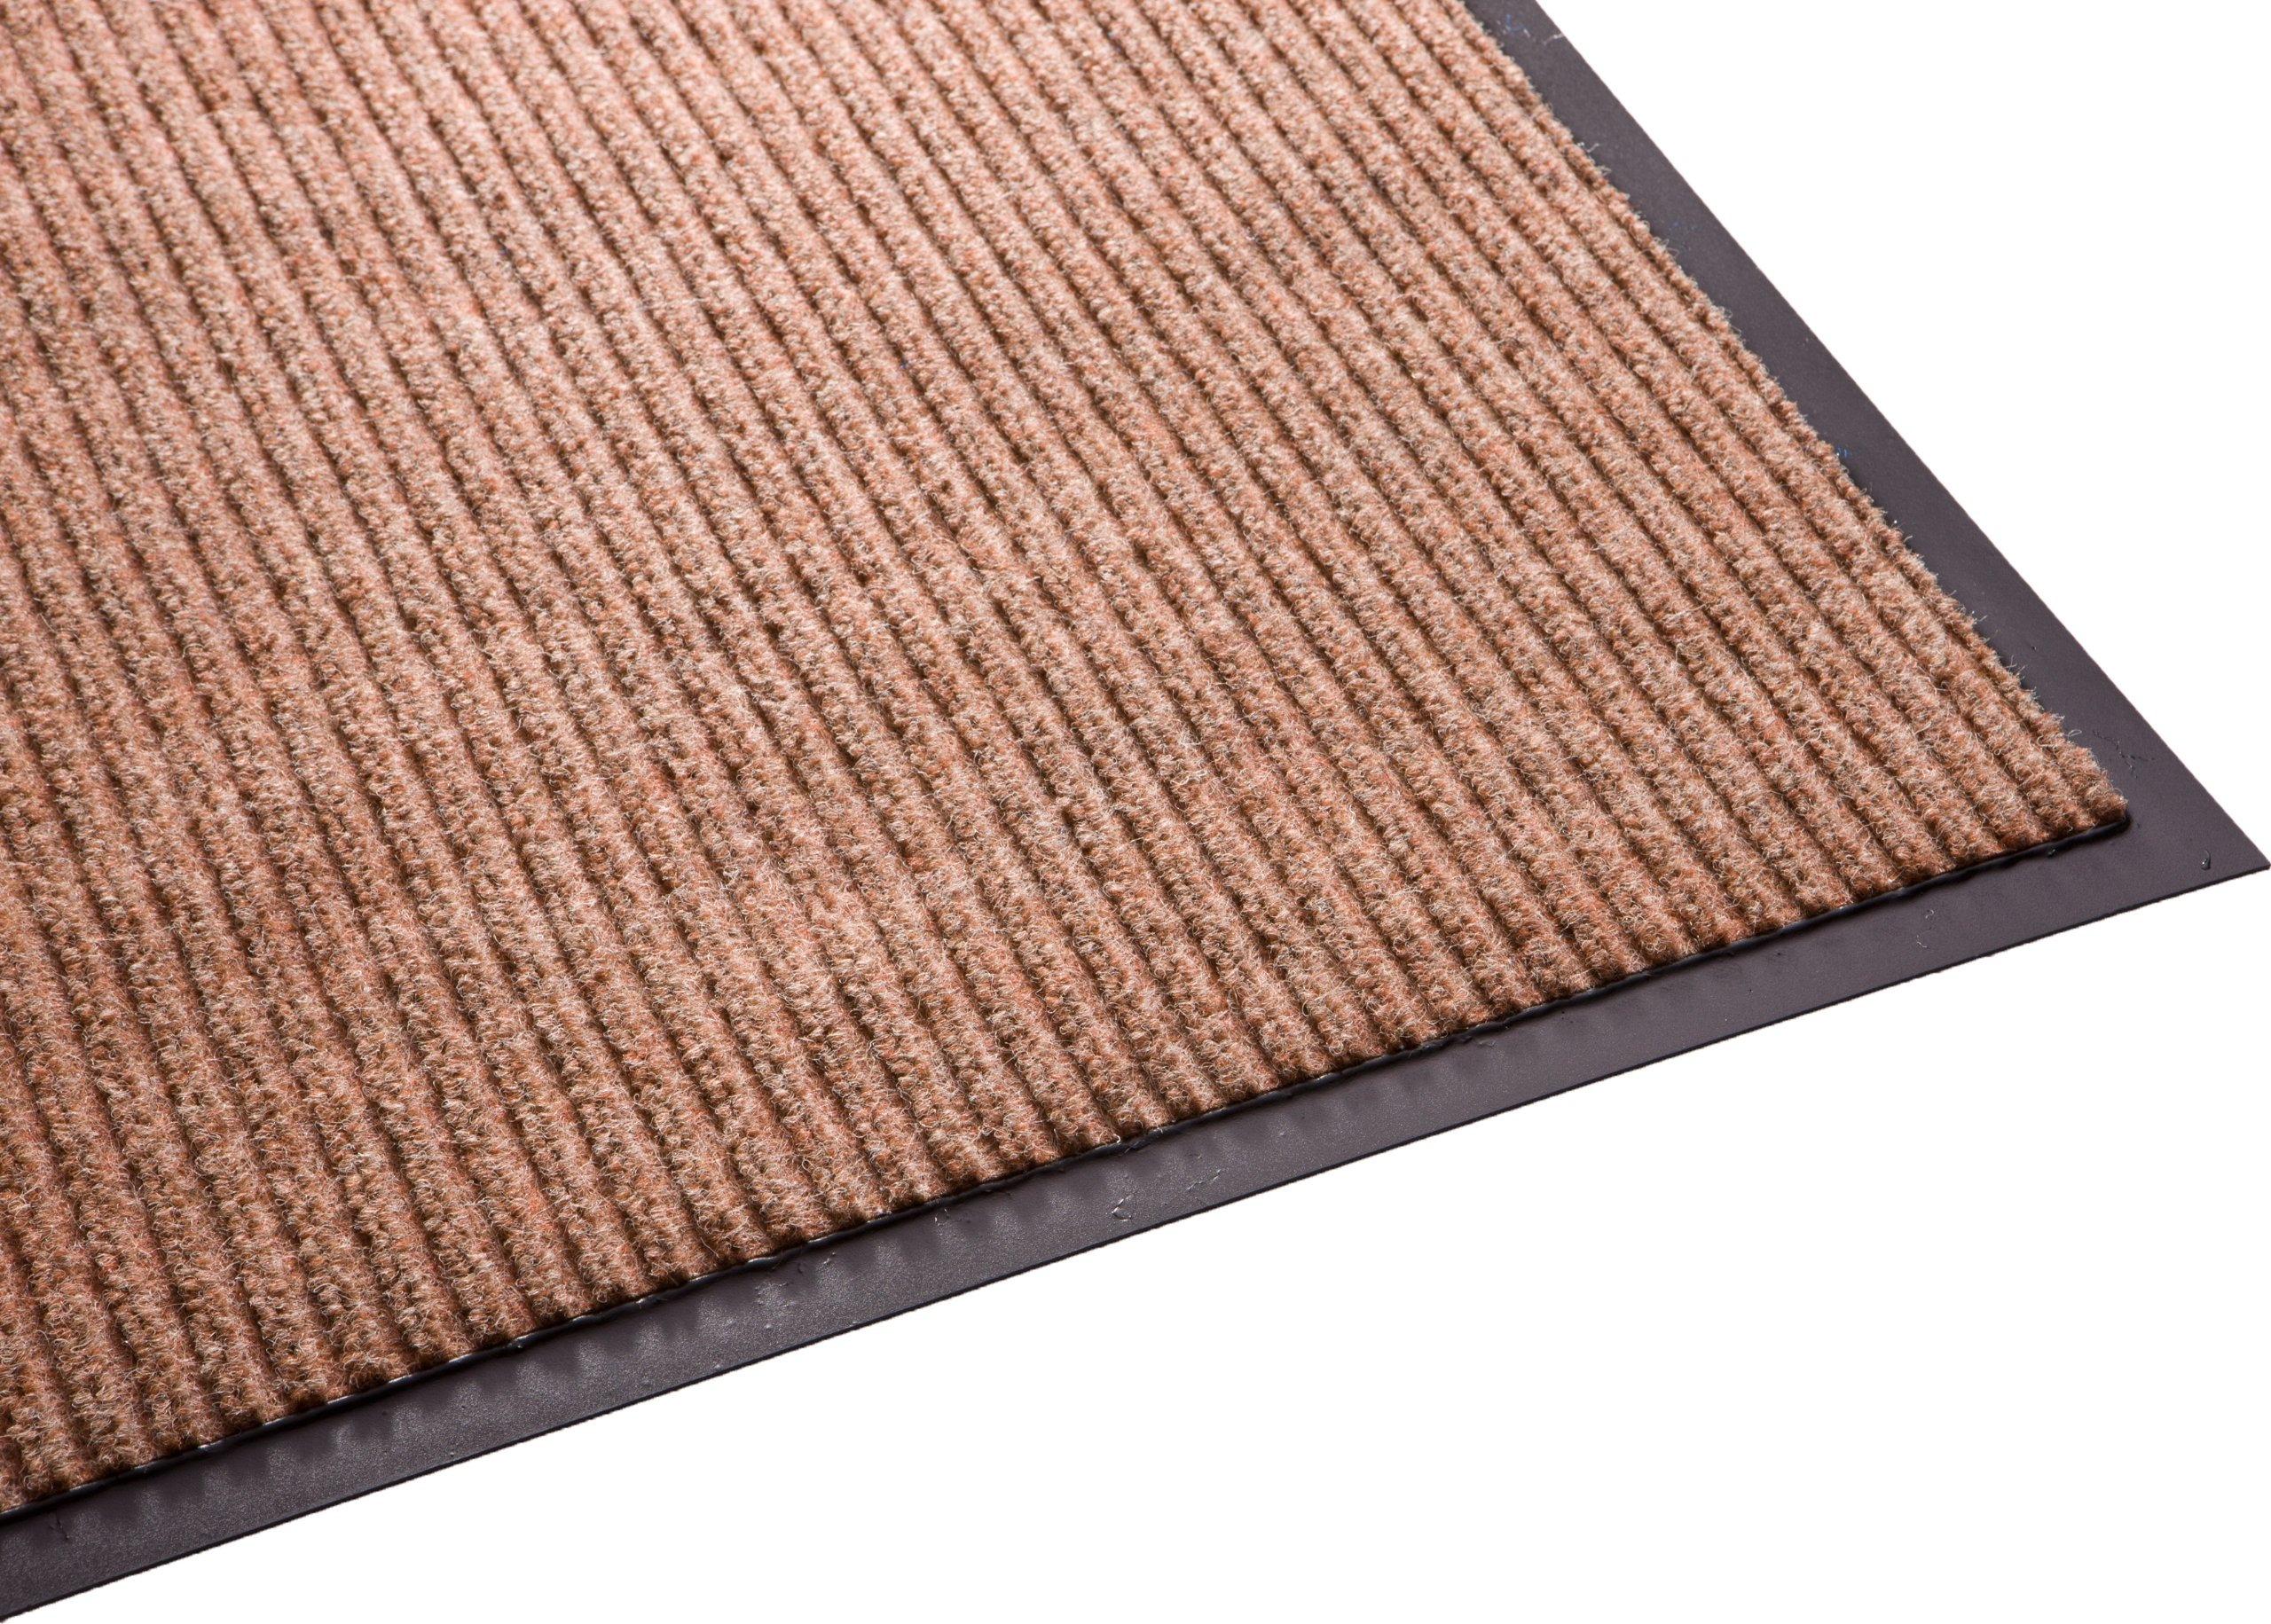 Guardian Golden Series Dual-Rib Indoor Wiper Floor Mat, Vinyl/Polypropylene, 4'x10', Beige by Guardian